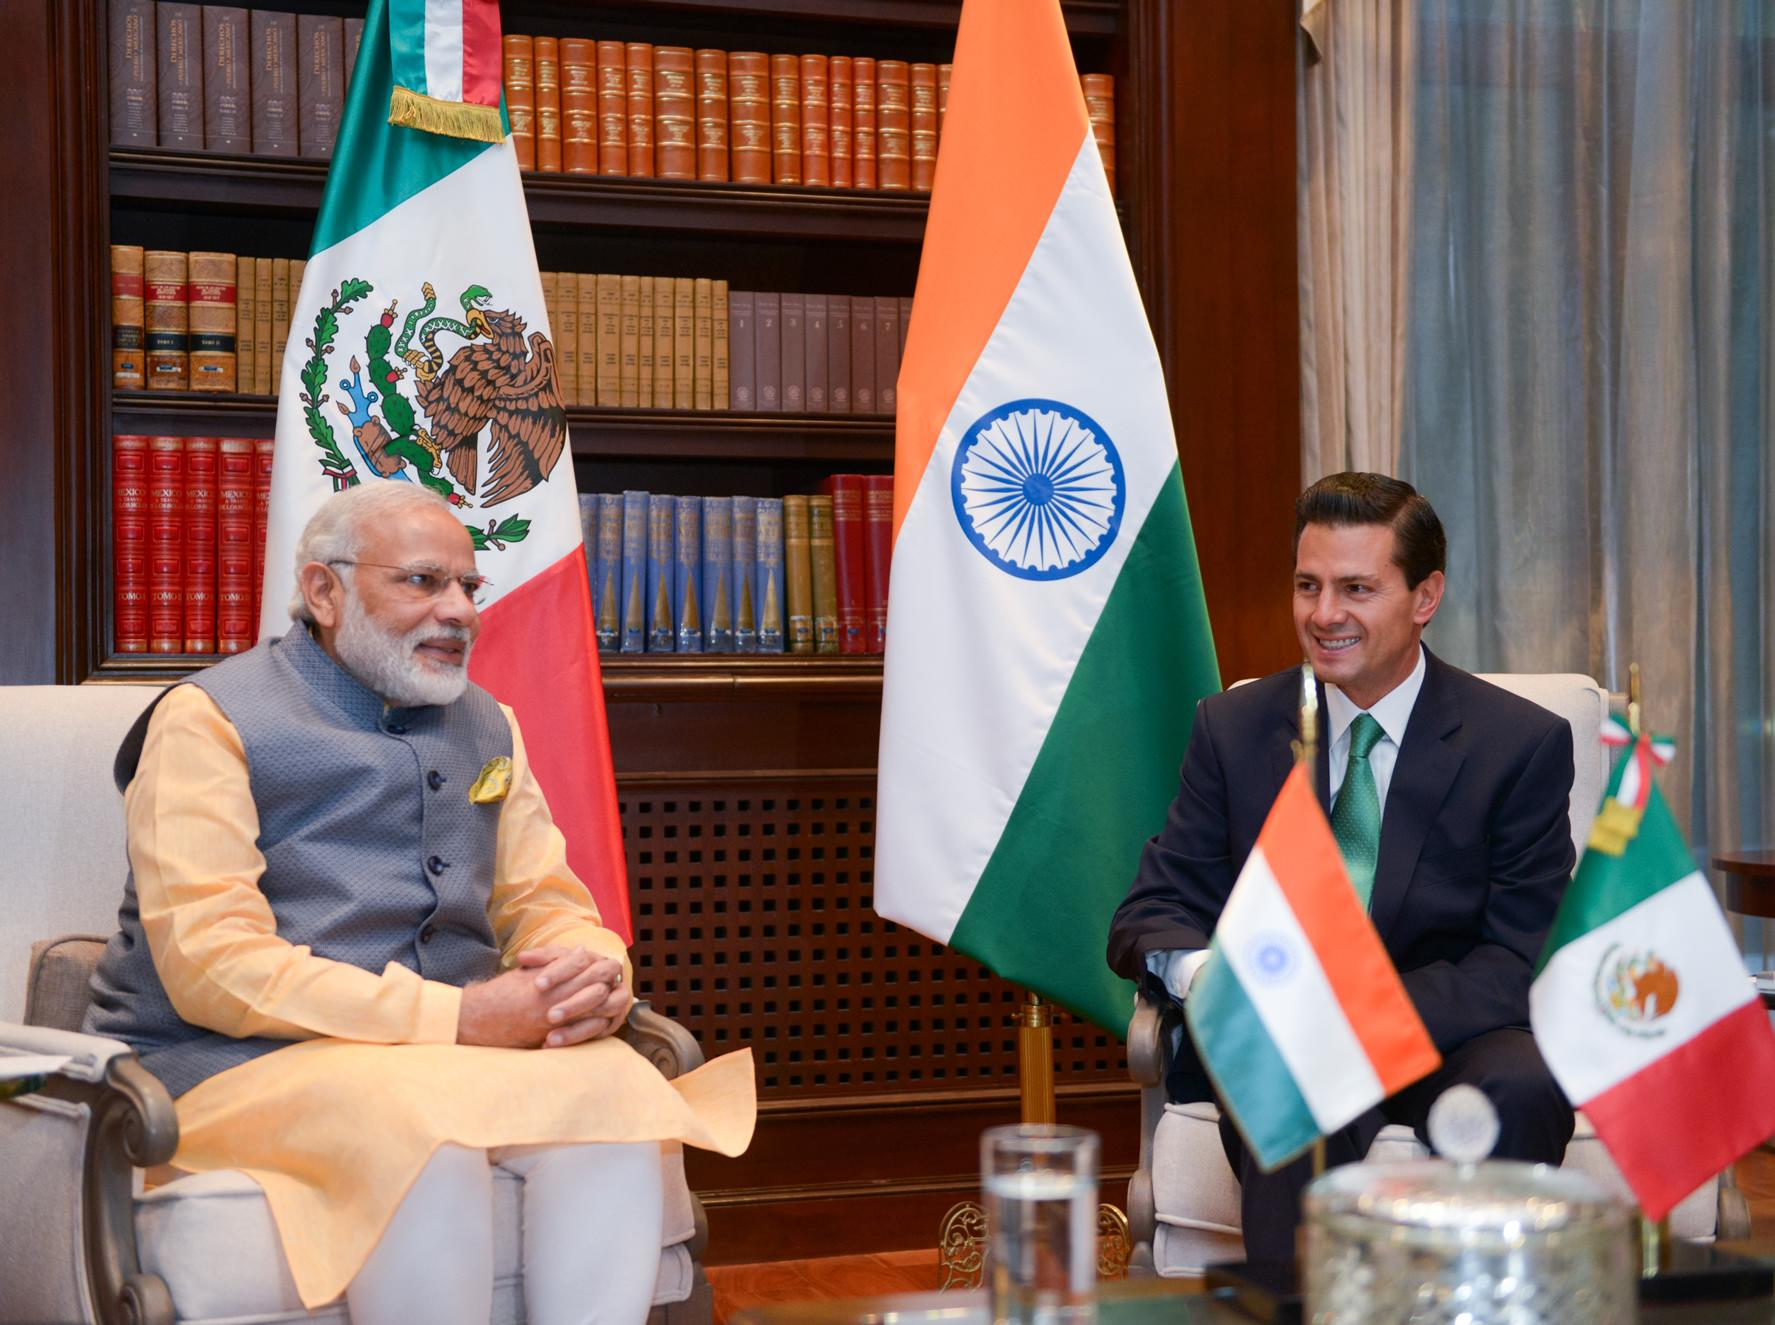 The President of Mexico received the Prime Minister of India, who is on a working visit to Mexico.